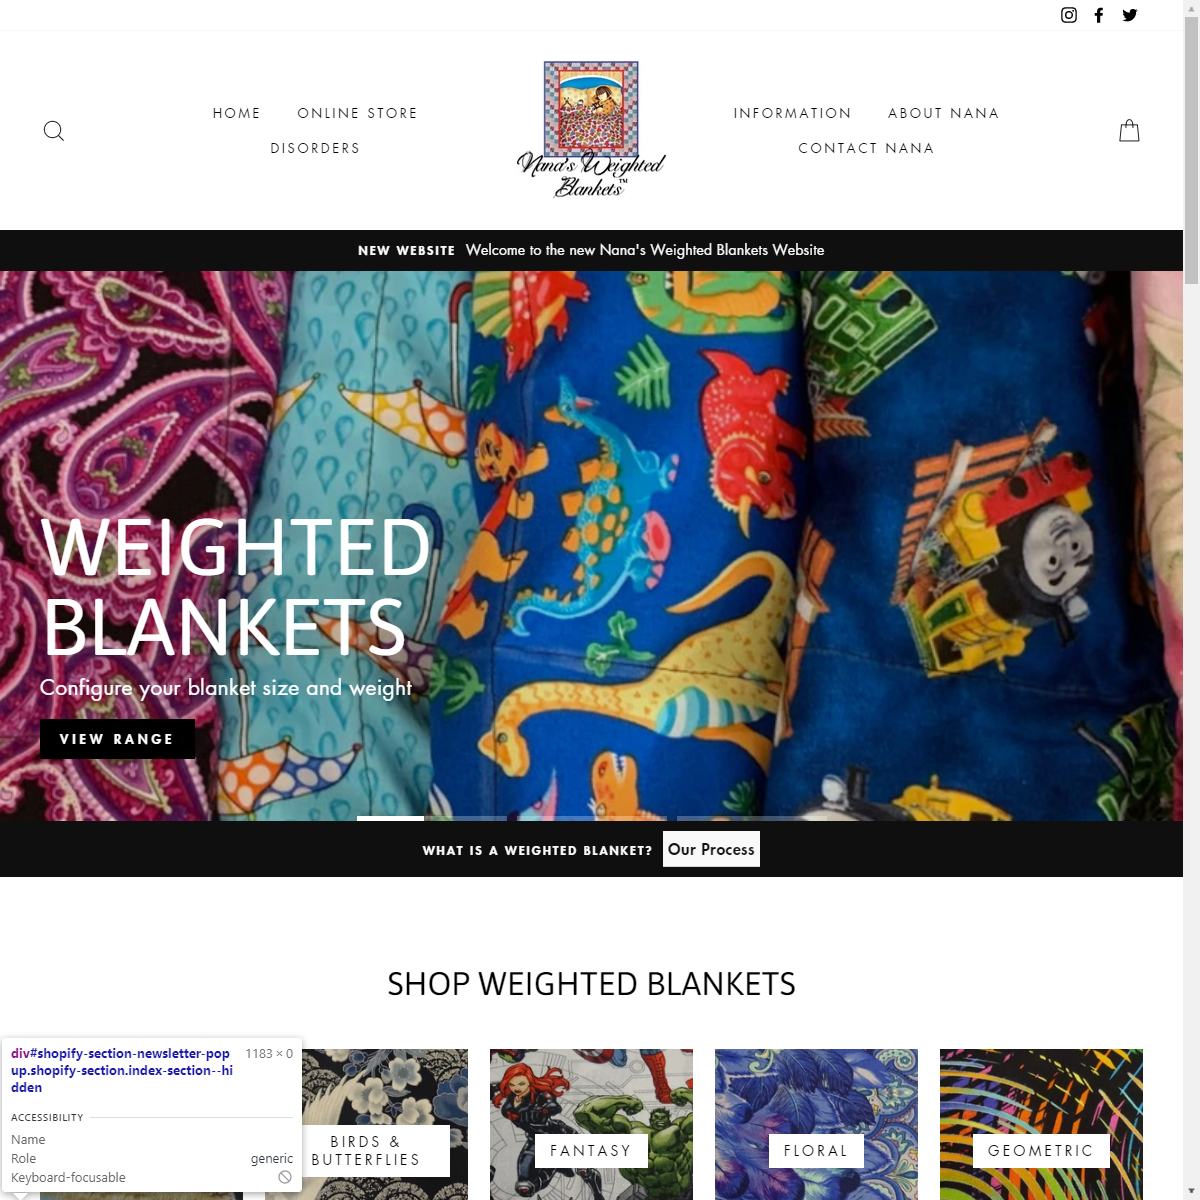 Nana's Weighted Blankets Website Design